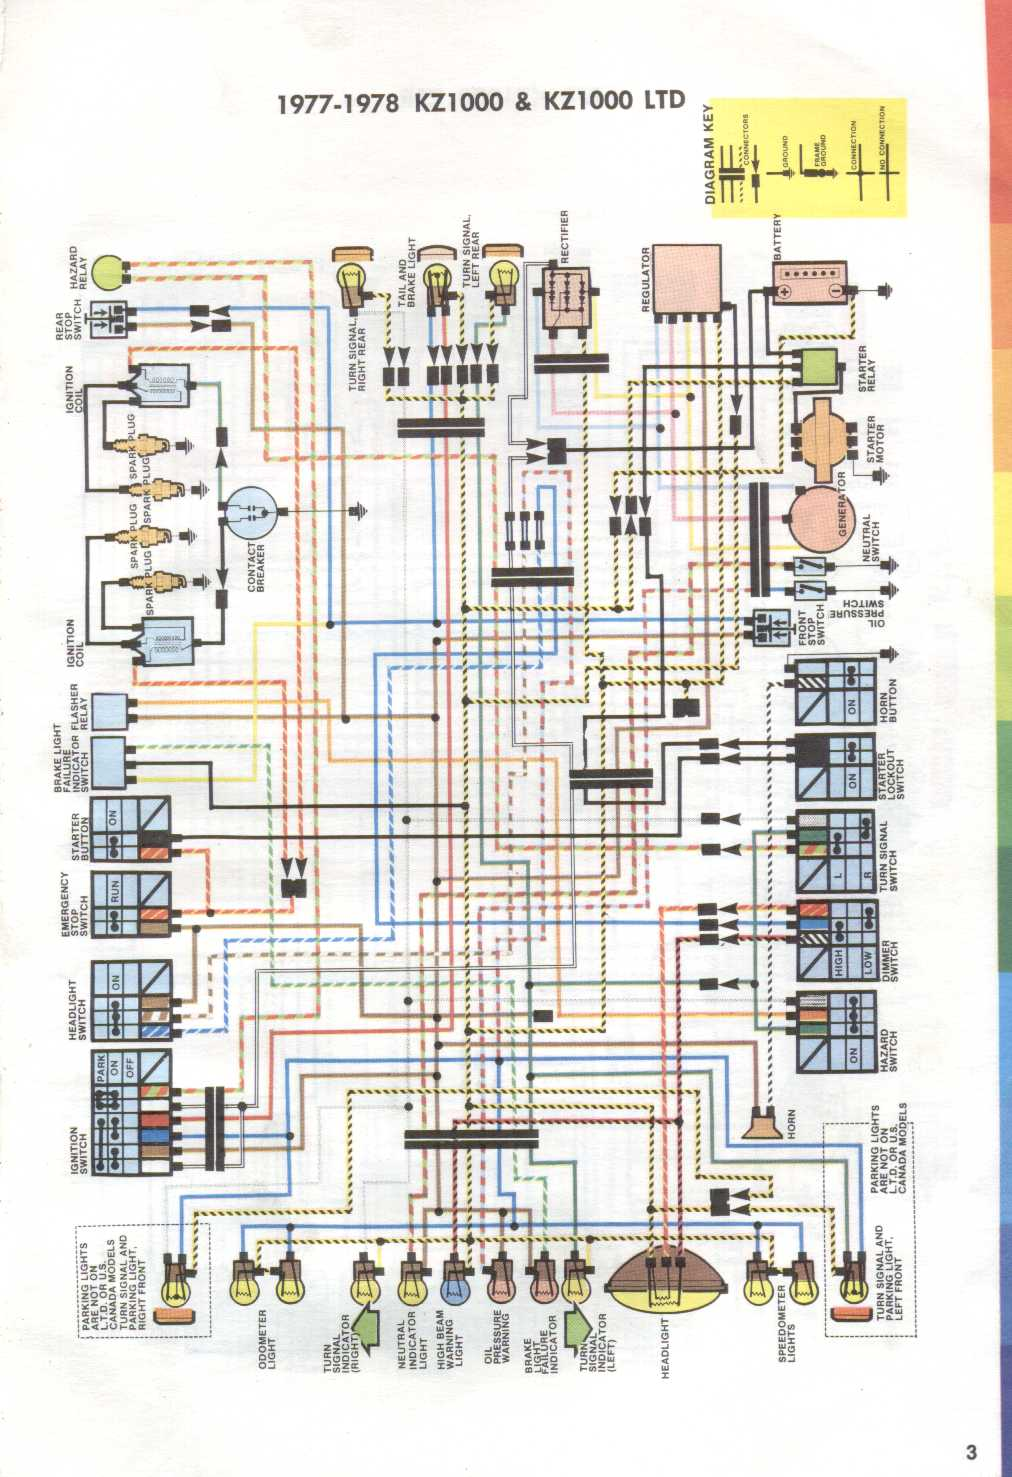 wiring diagram z1000 free download wiring diagram xwiaw simple rh xwiaw us Simple Wiring Diagrams kawasaki z1000sx wiring diagram